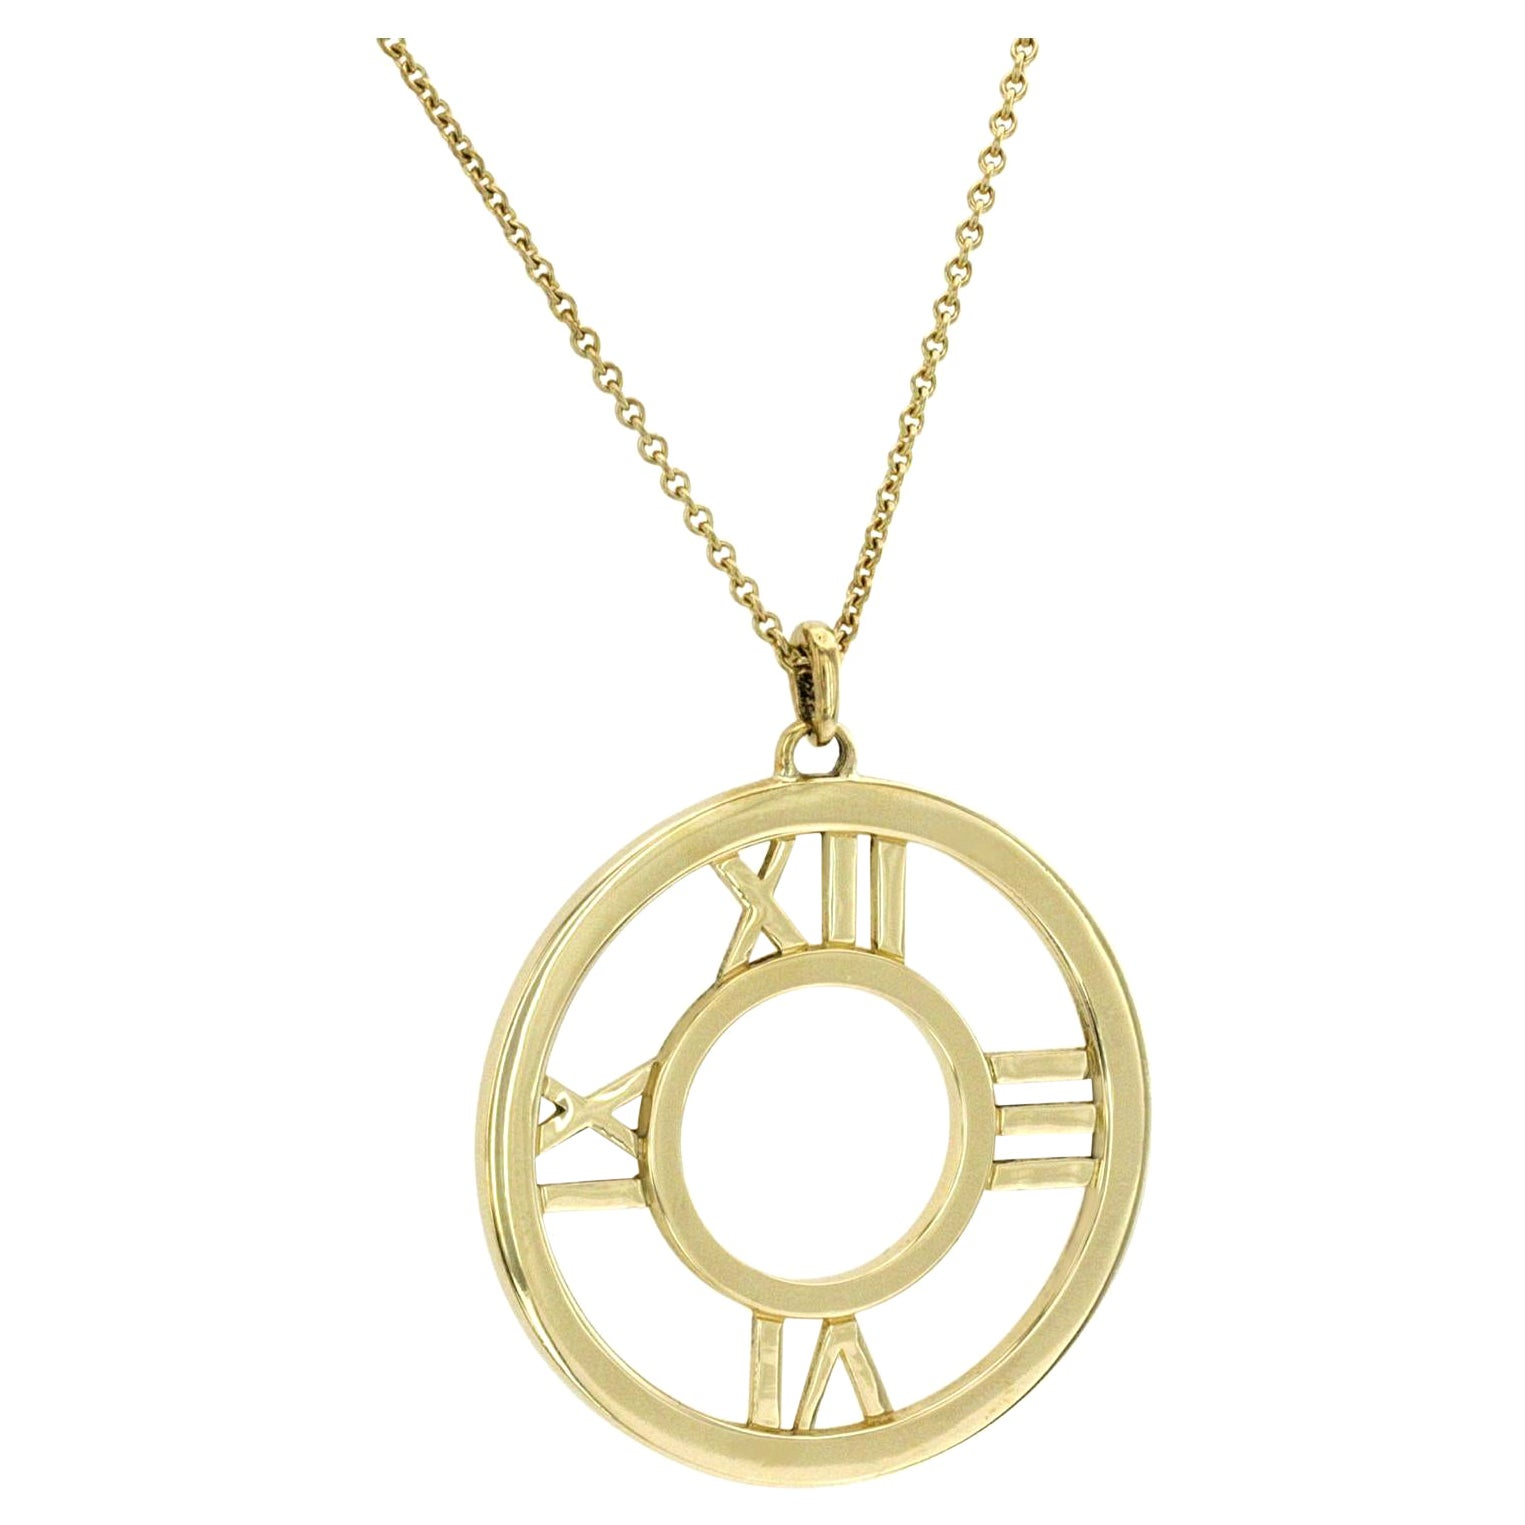 Tiffany & Co. 18K Yellow Gold Large Atlas Roman Numeral Necklace